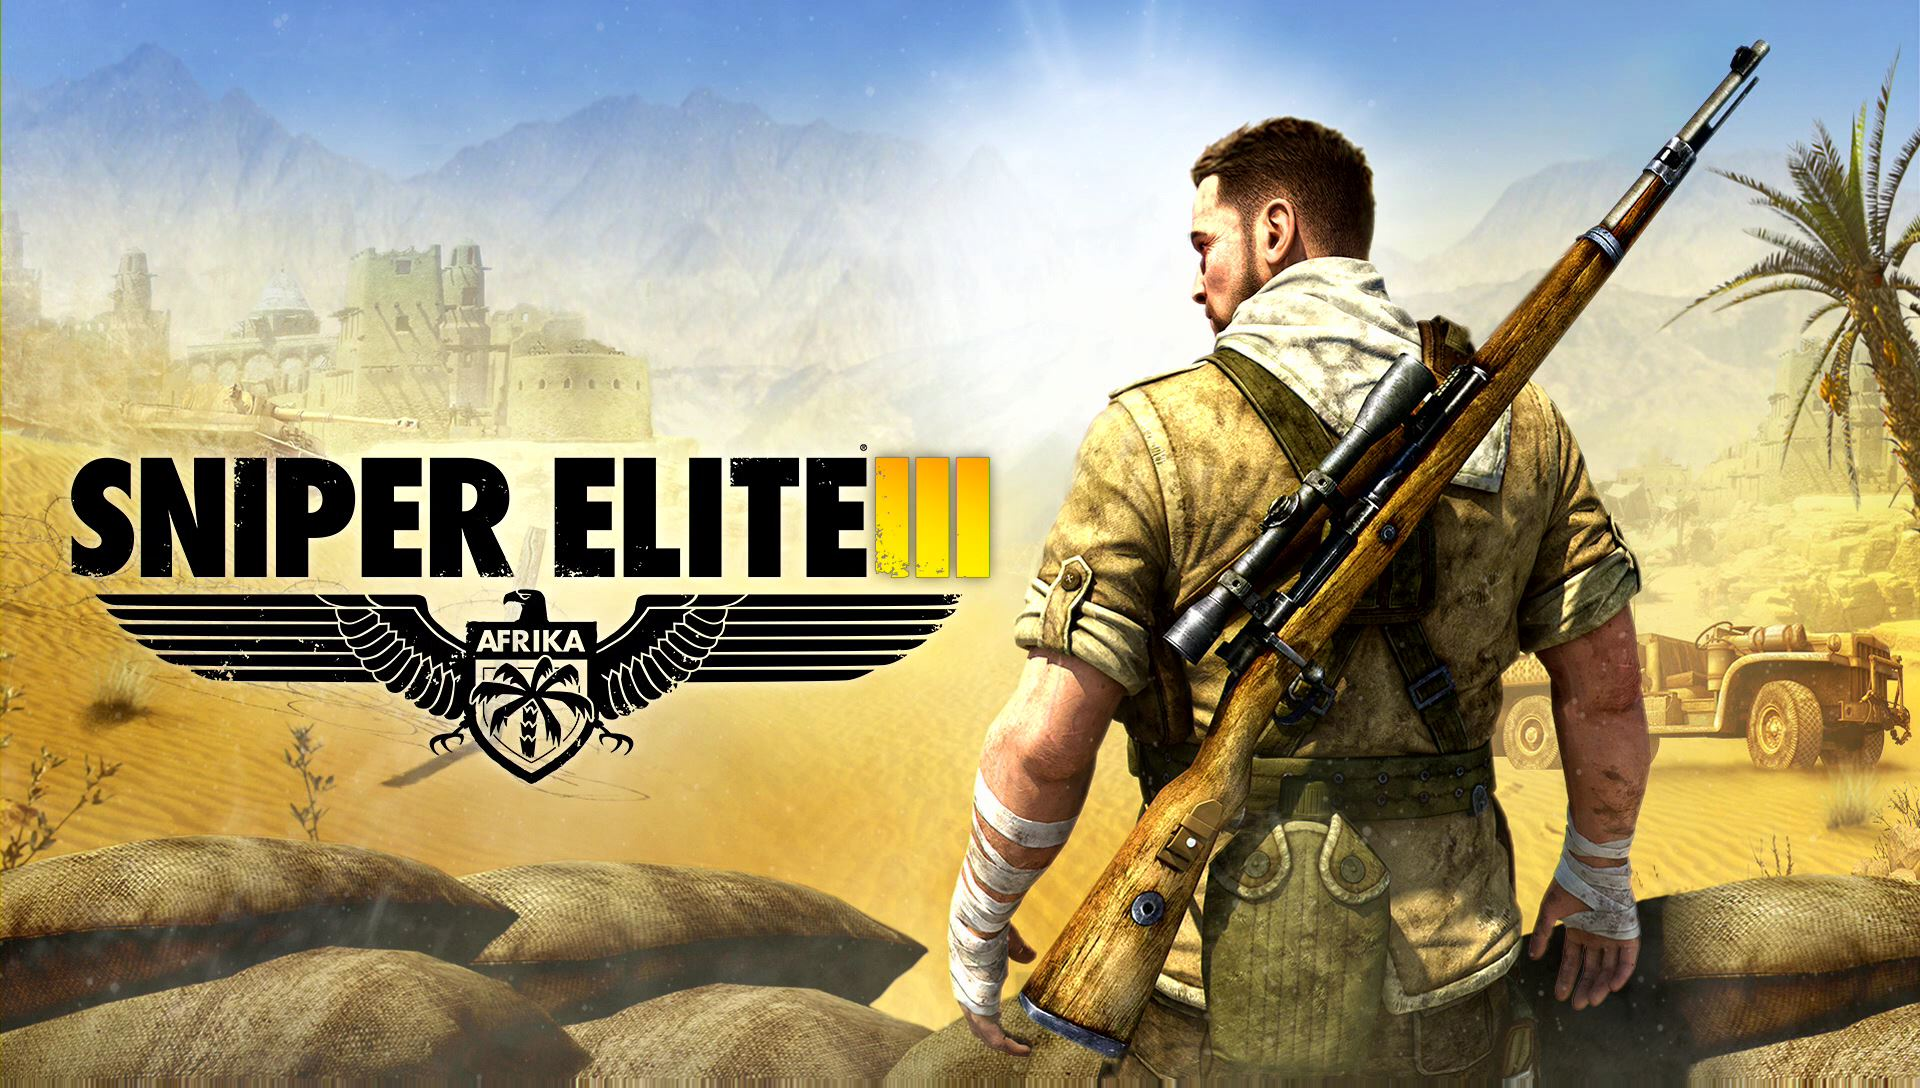 Sniper Elite 3 (steam key RU,CIS)